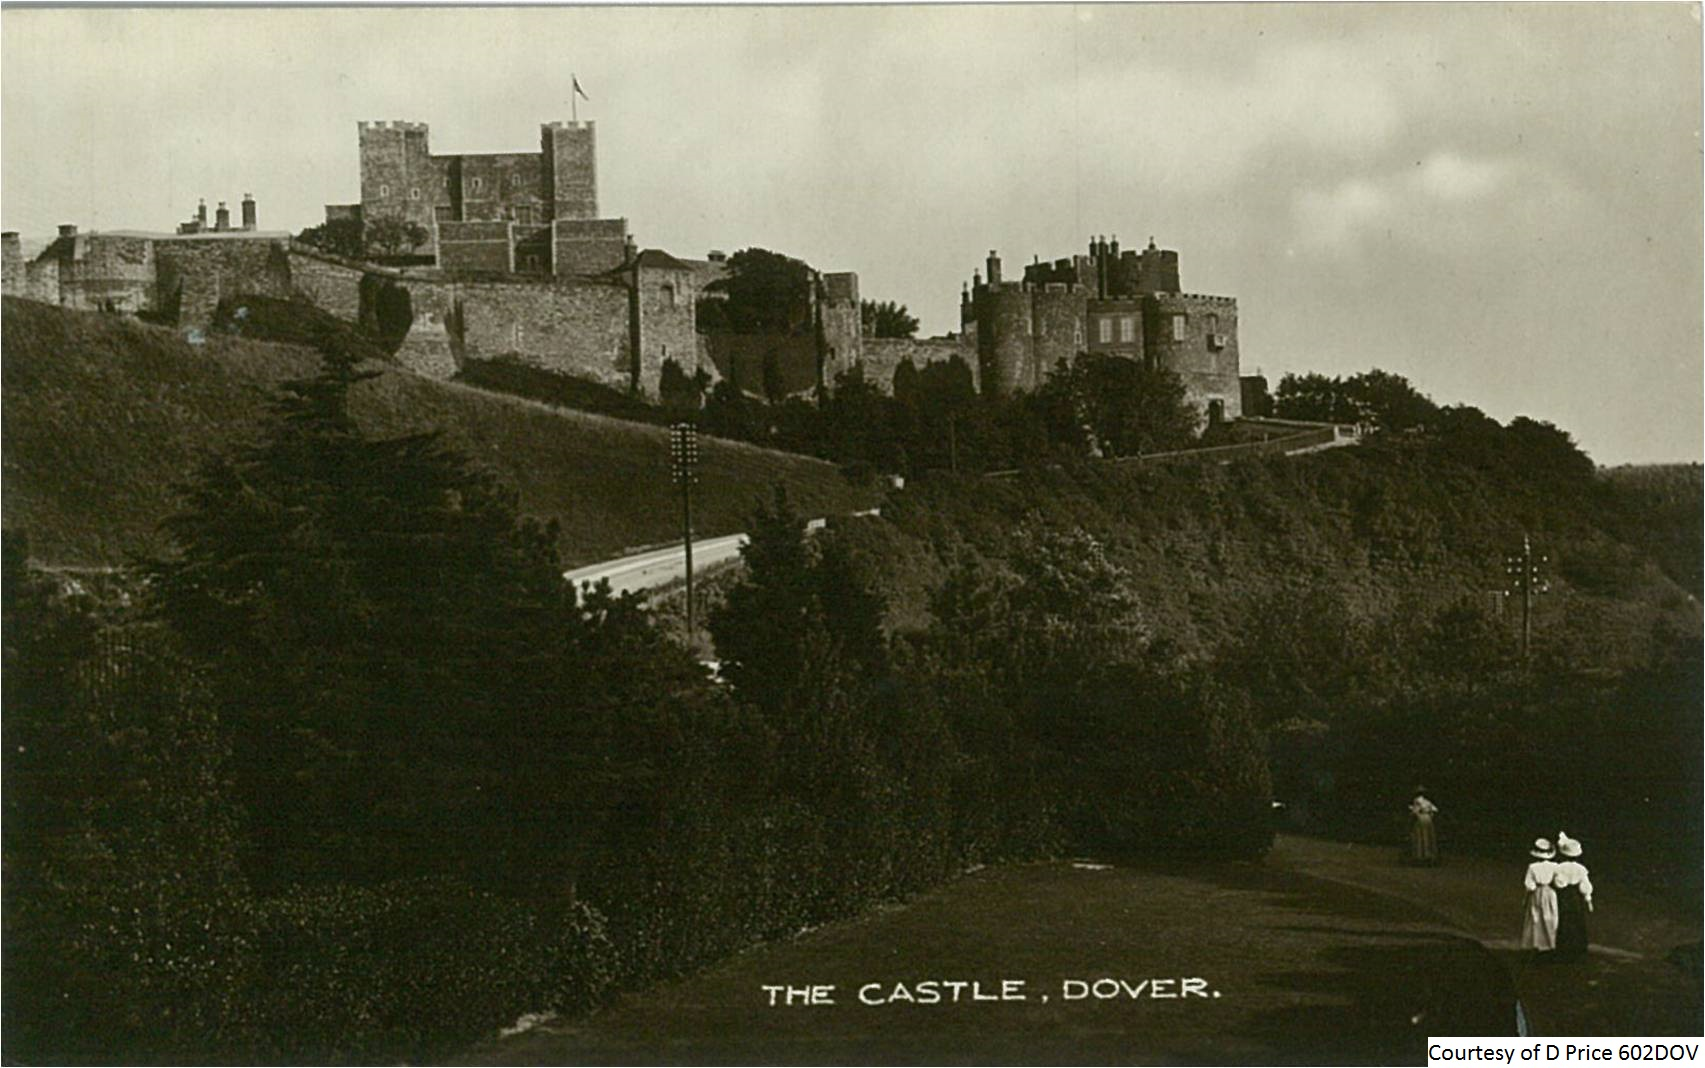 602dov-the-castle-dover-front